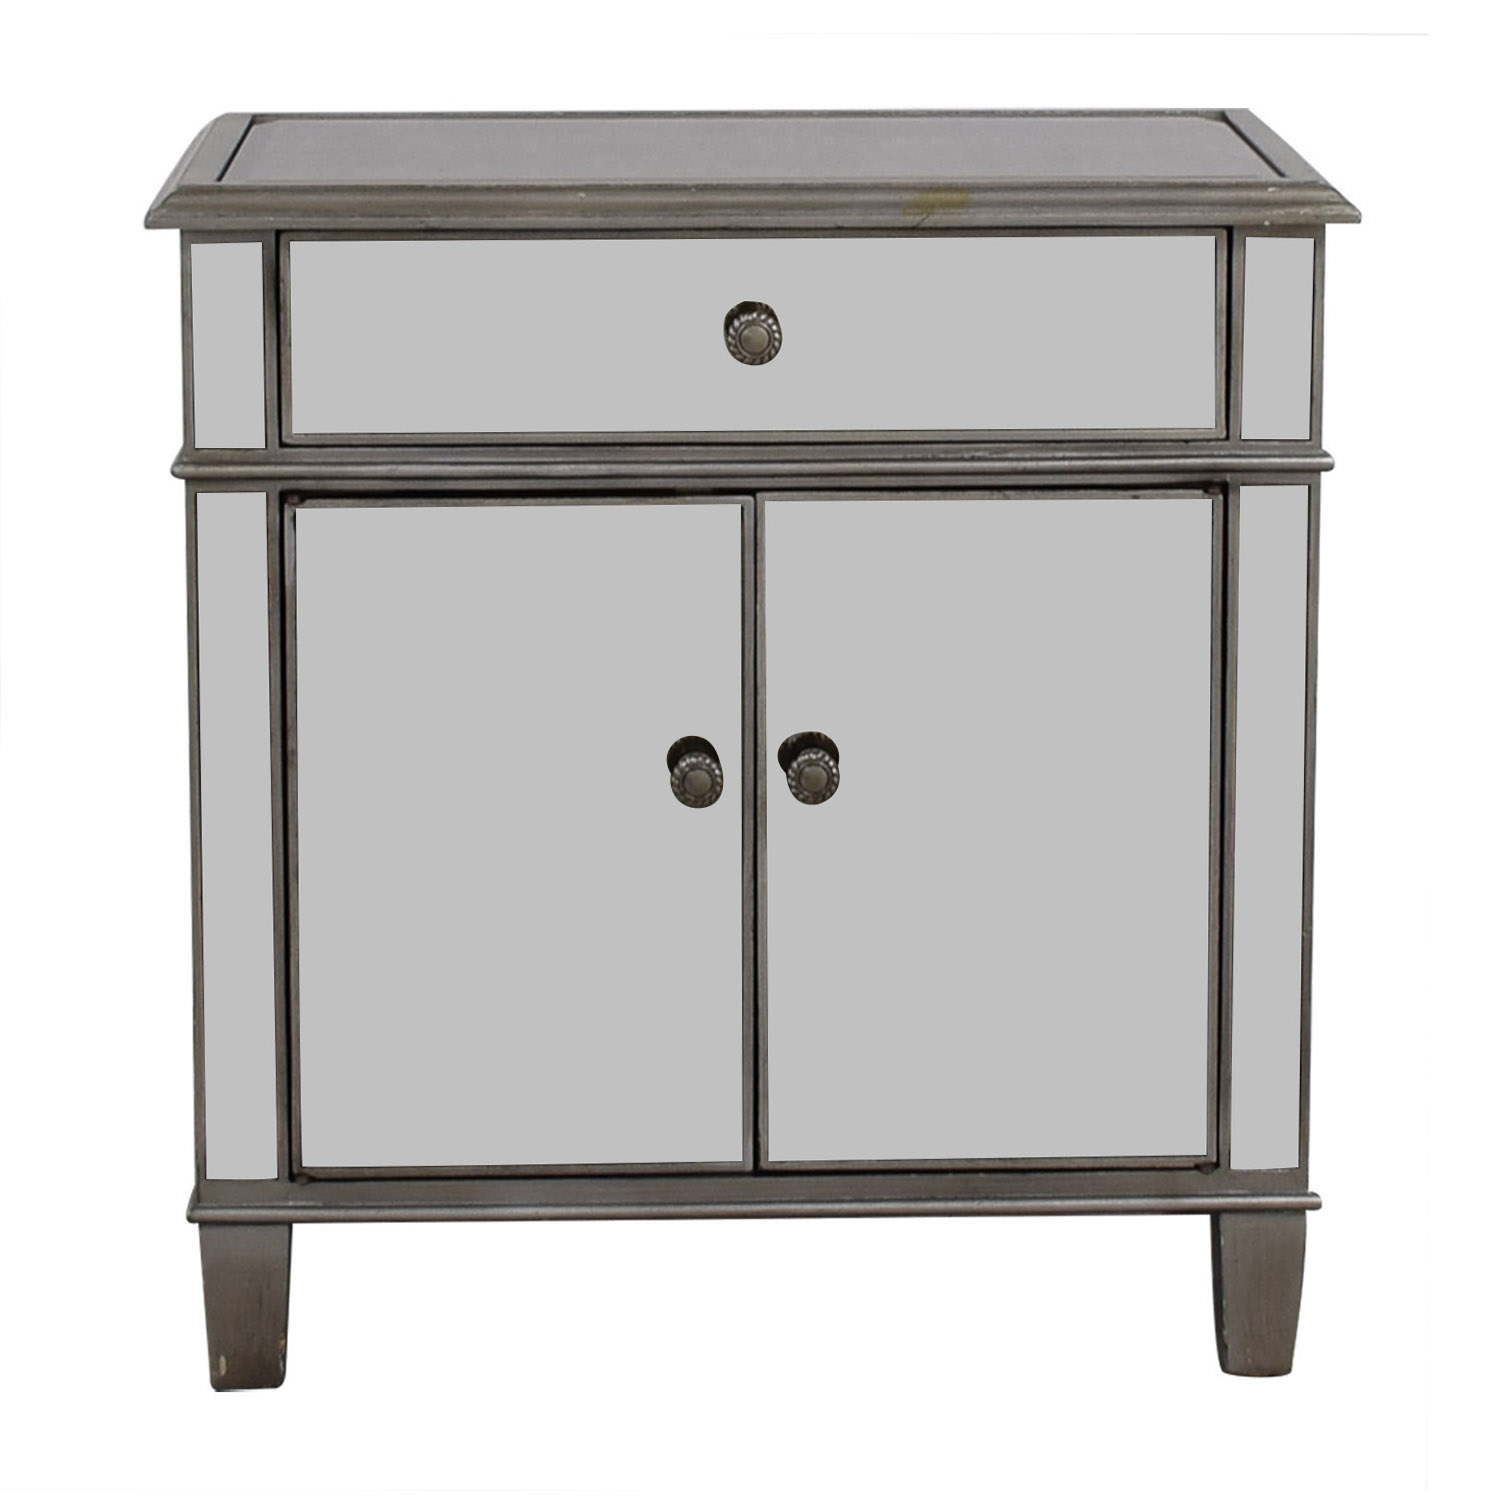 64 Off Pier 1 Pier1 Imports Mirror And Silver Nightstand Tables